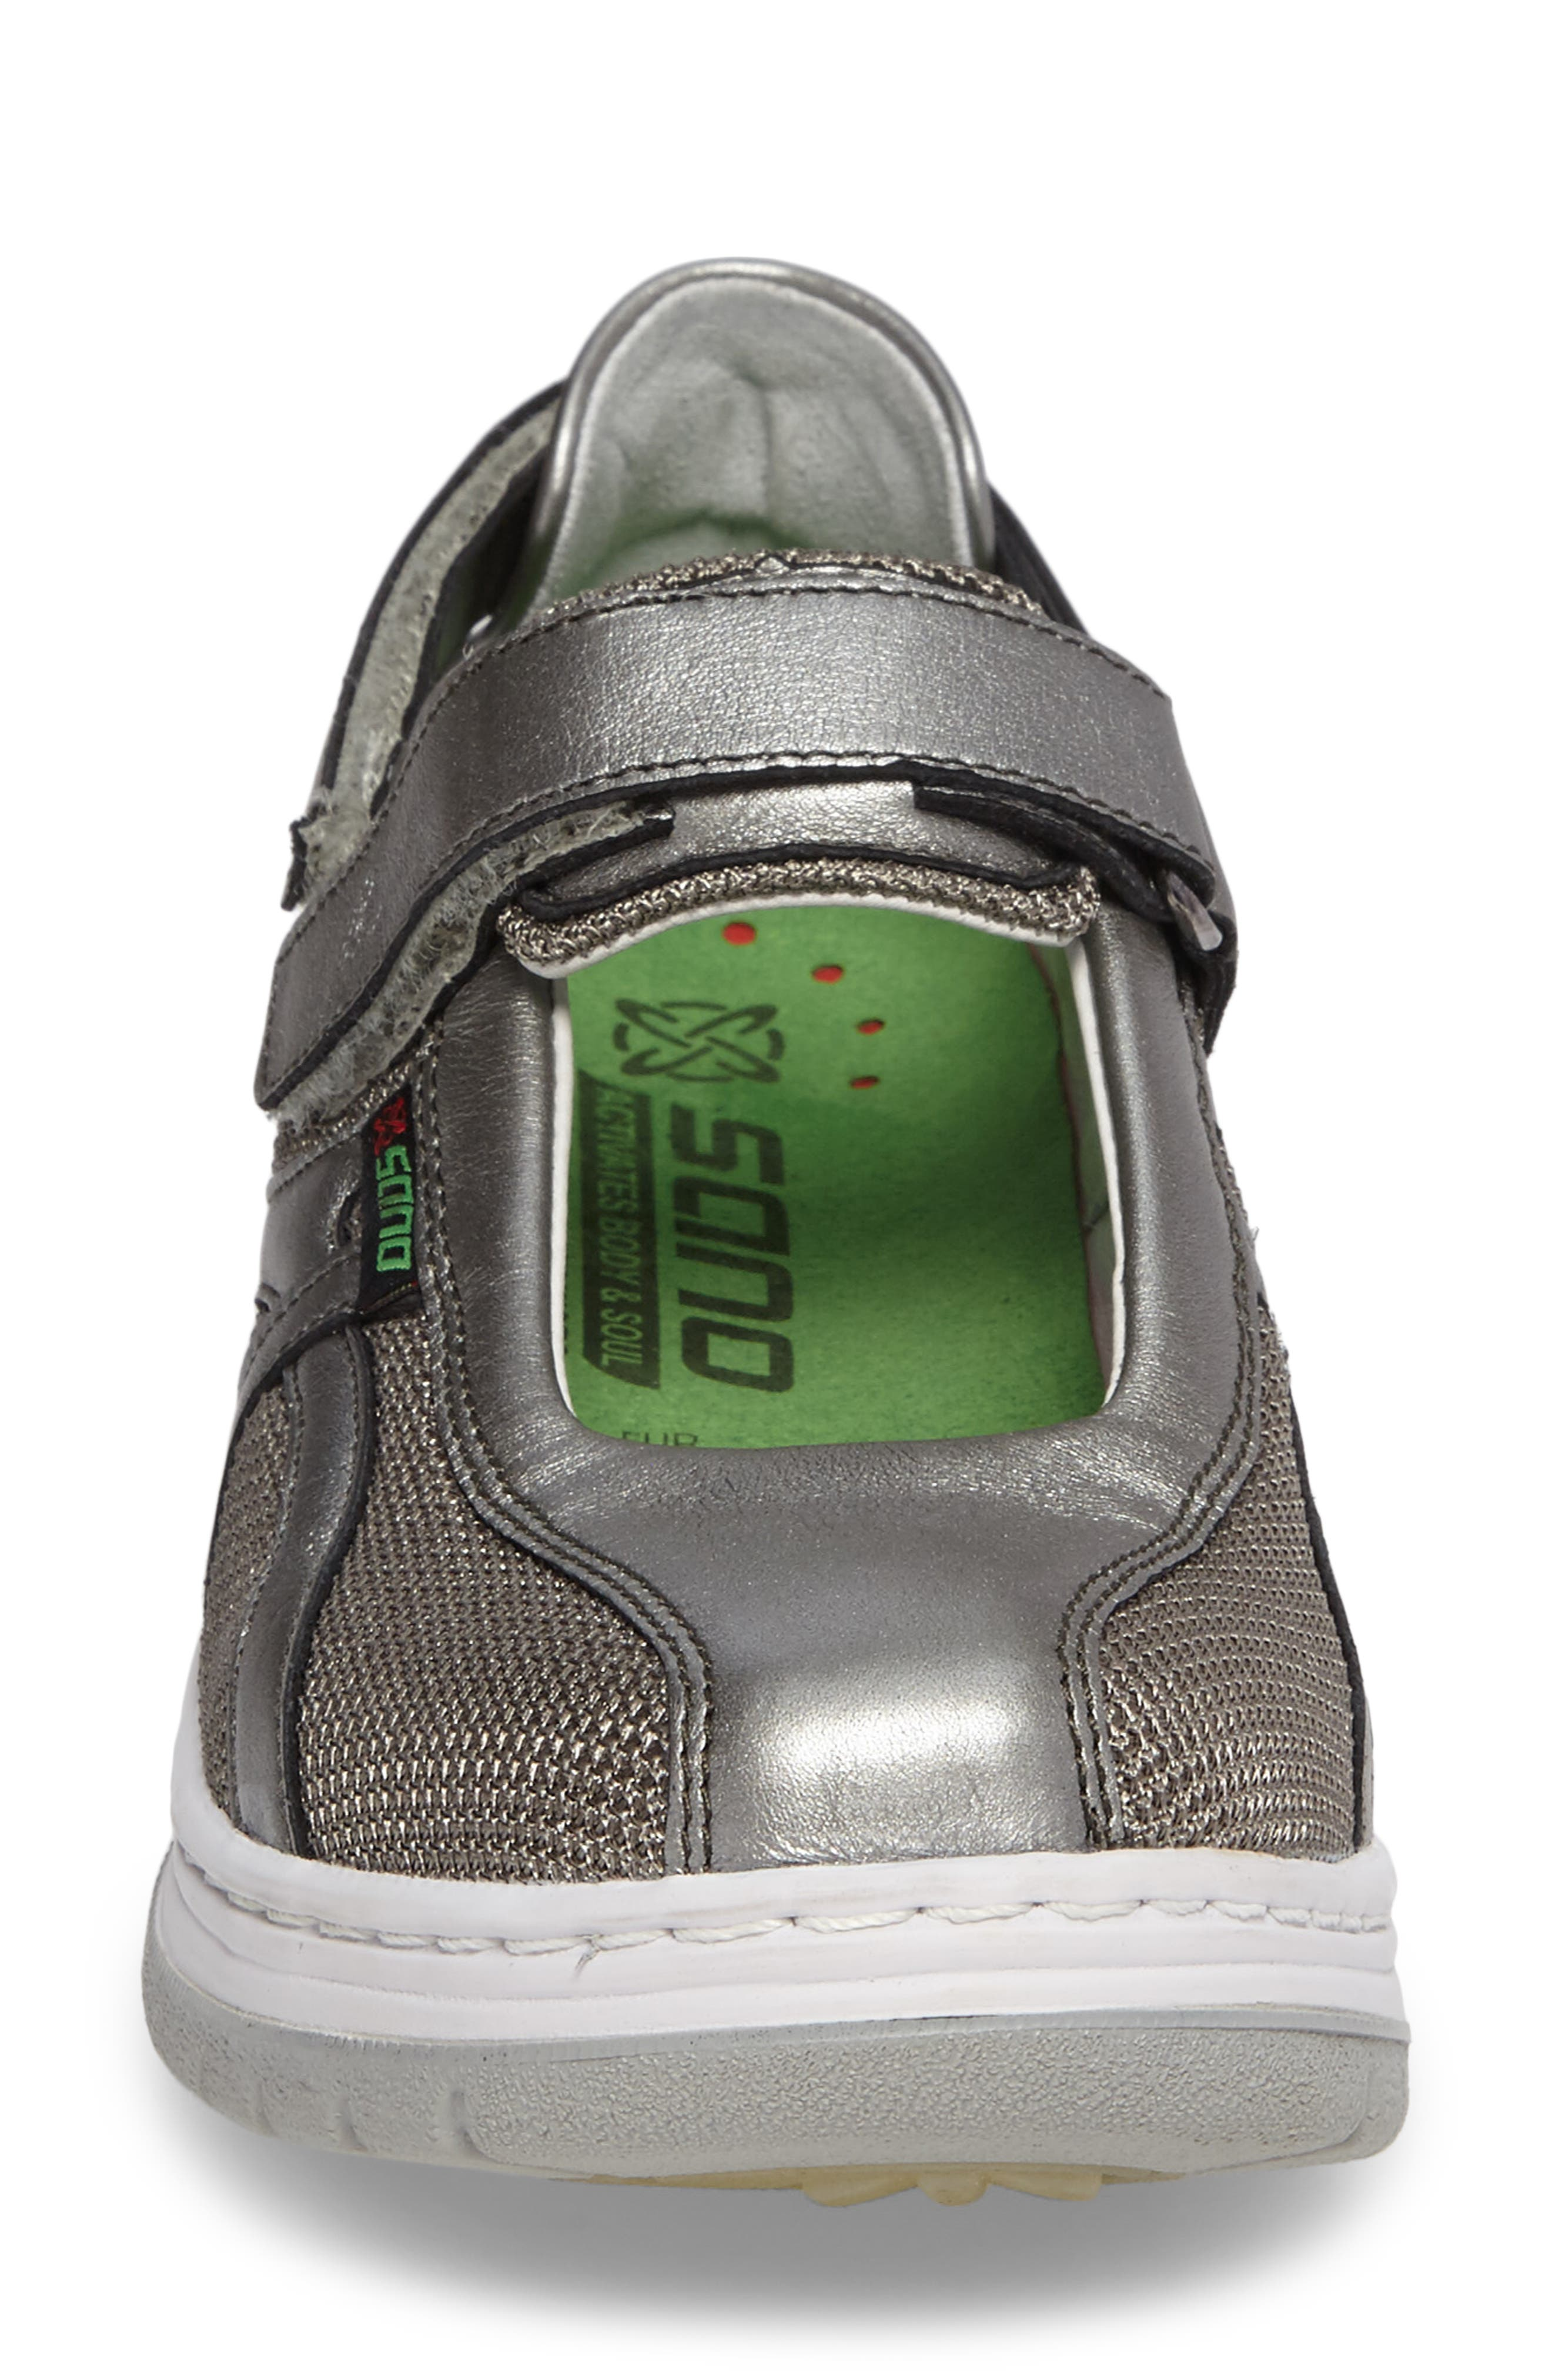 Sano by Mephisto 'Excess' Walking Shoe,                             Alternate thumbnail 12, color,